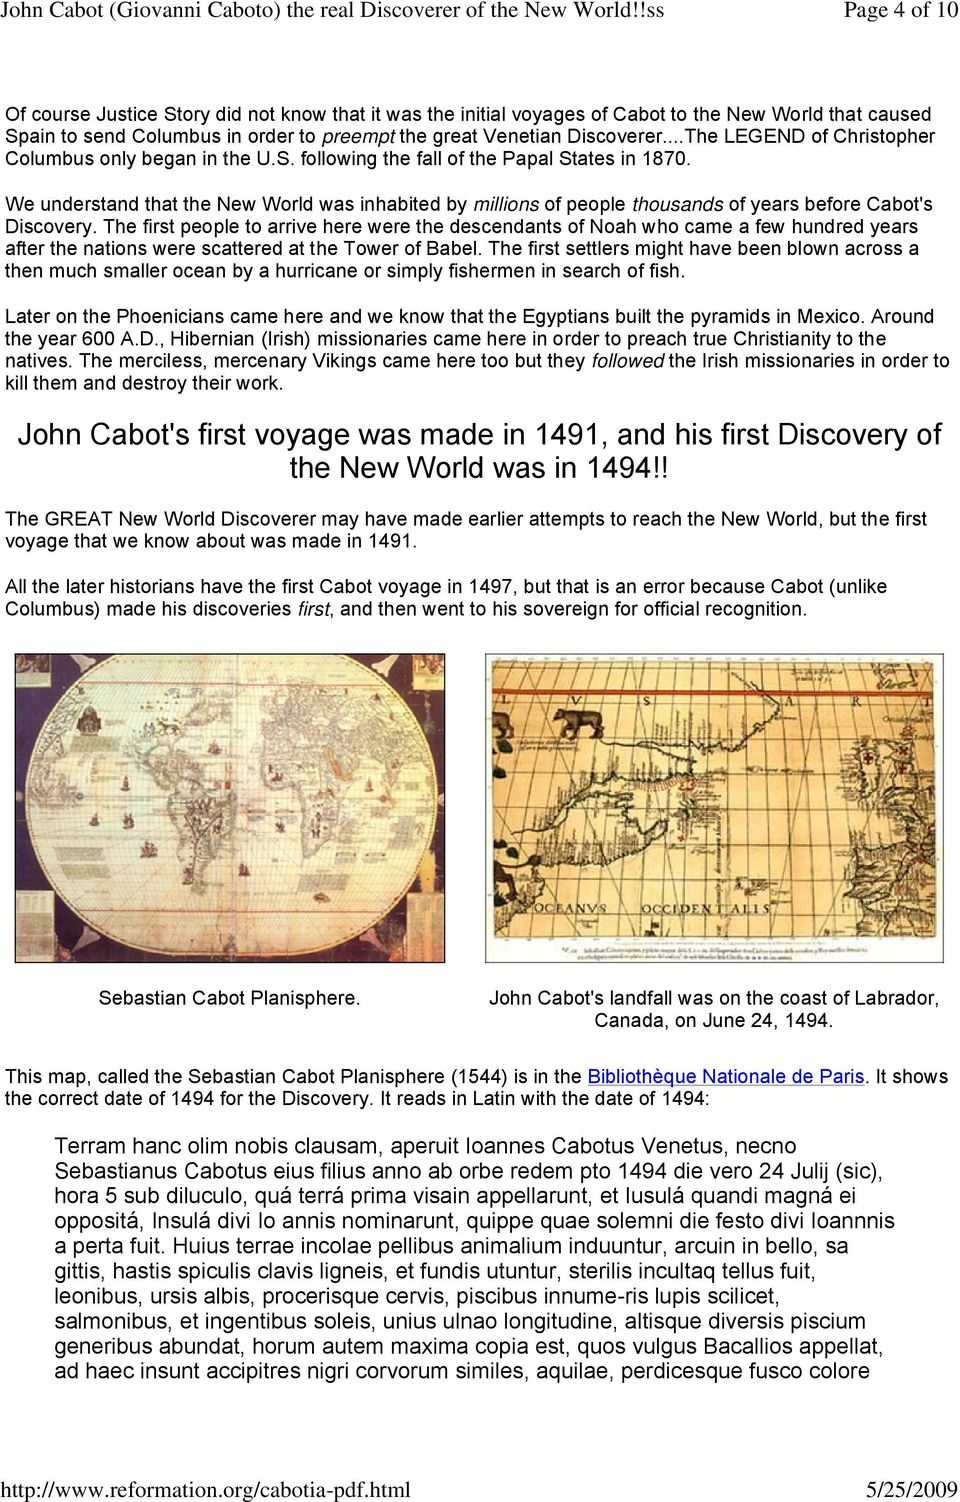 We understand that the New World was inhabited by millions of people thousands of years before Cabot's Discovery.